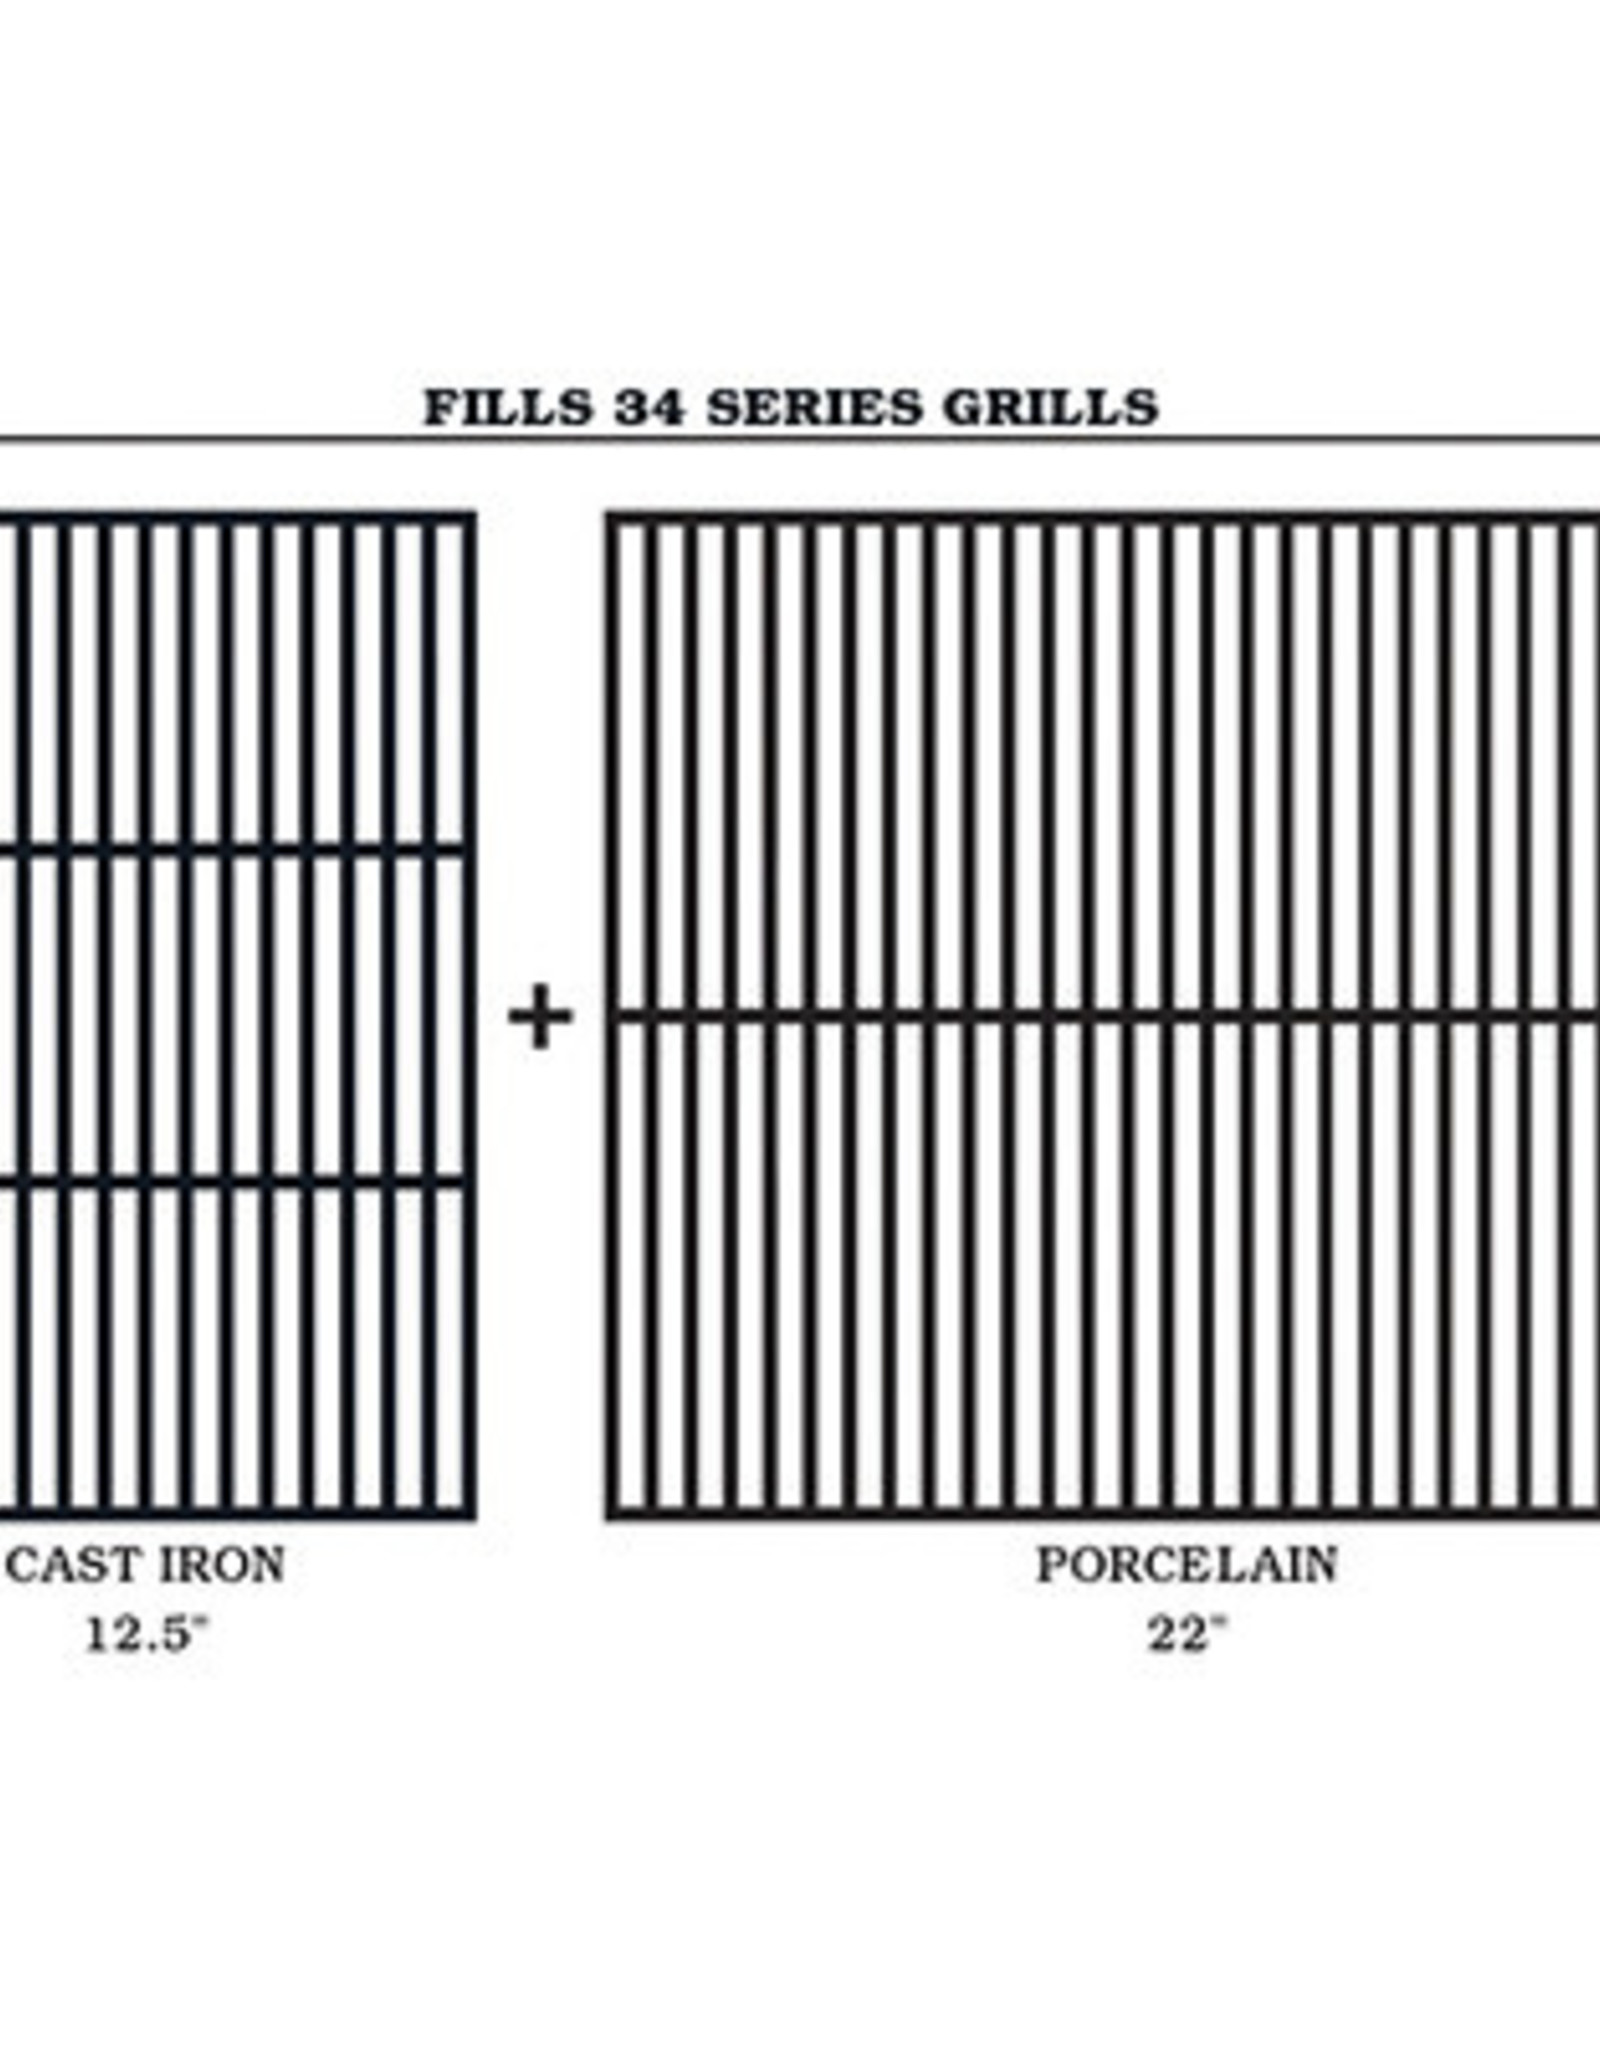 Traeger Traeger Cast Iron Cooking Grate Set For 34 Series Grills - BAC367